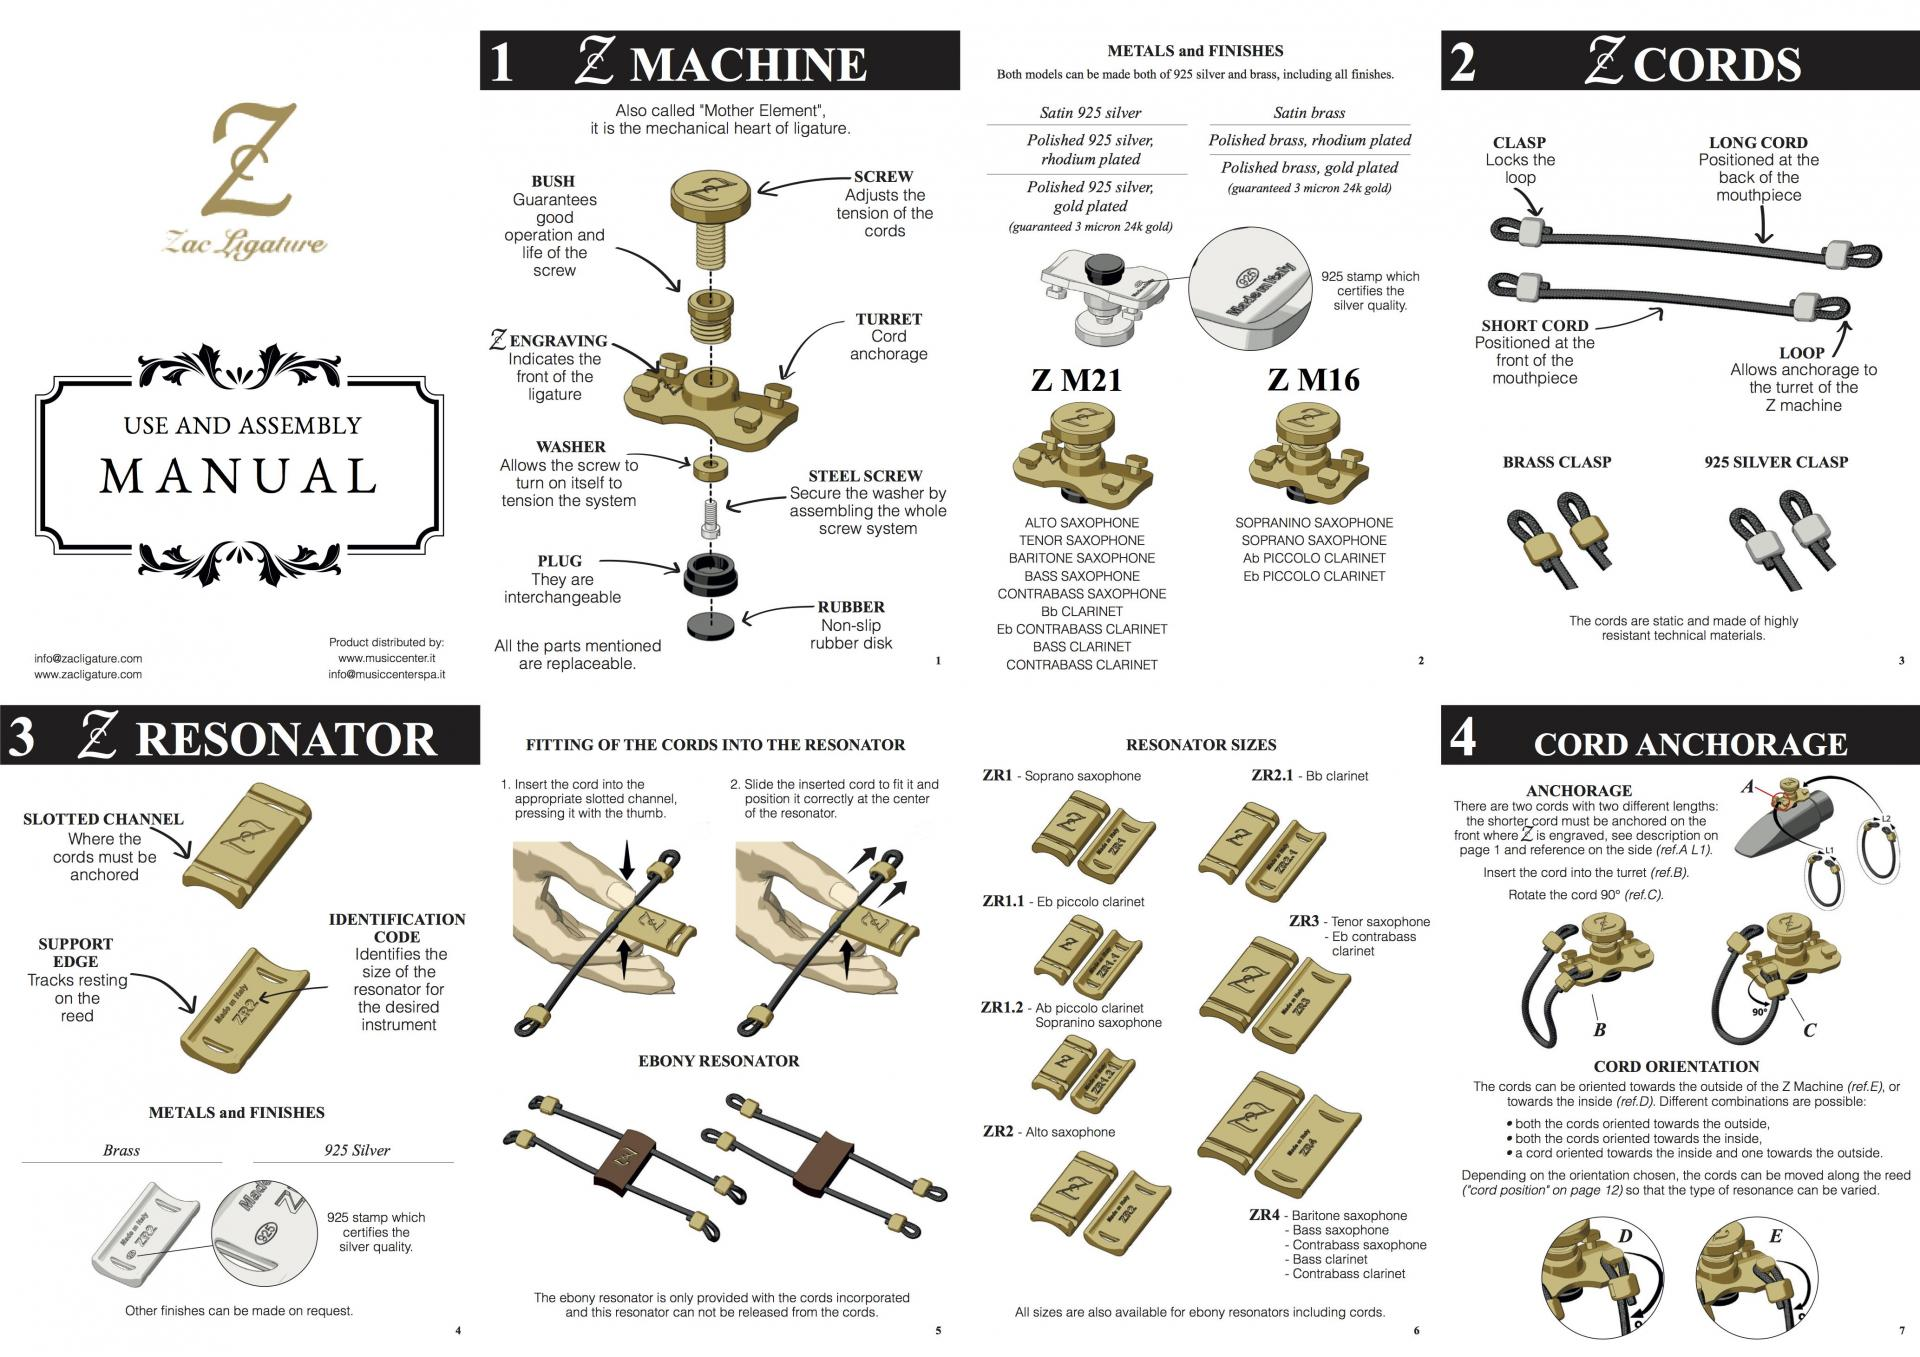 Use and assembly manual Zac Ligature Ing